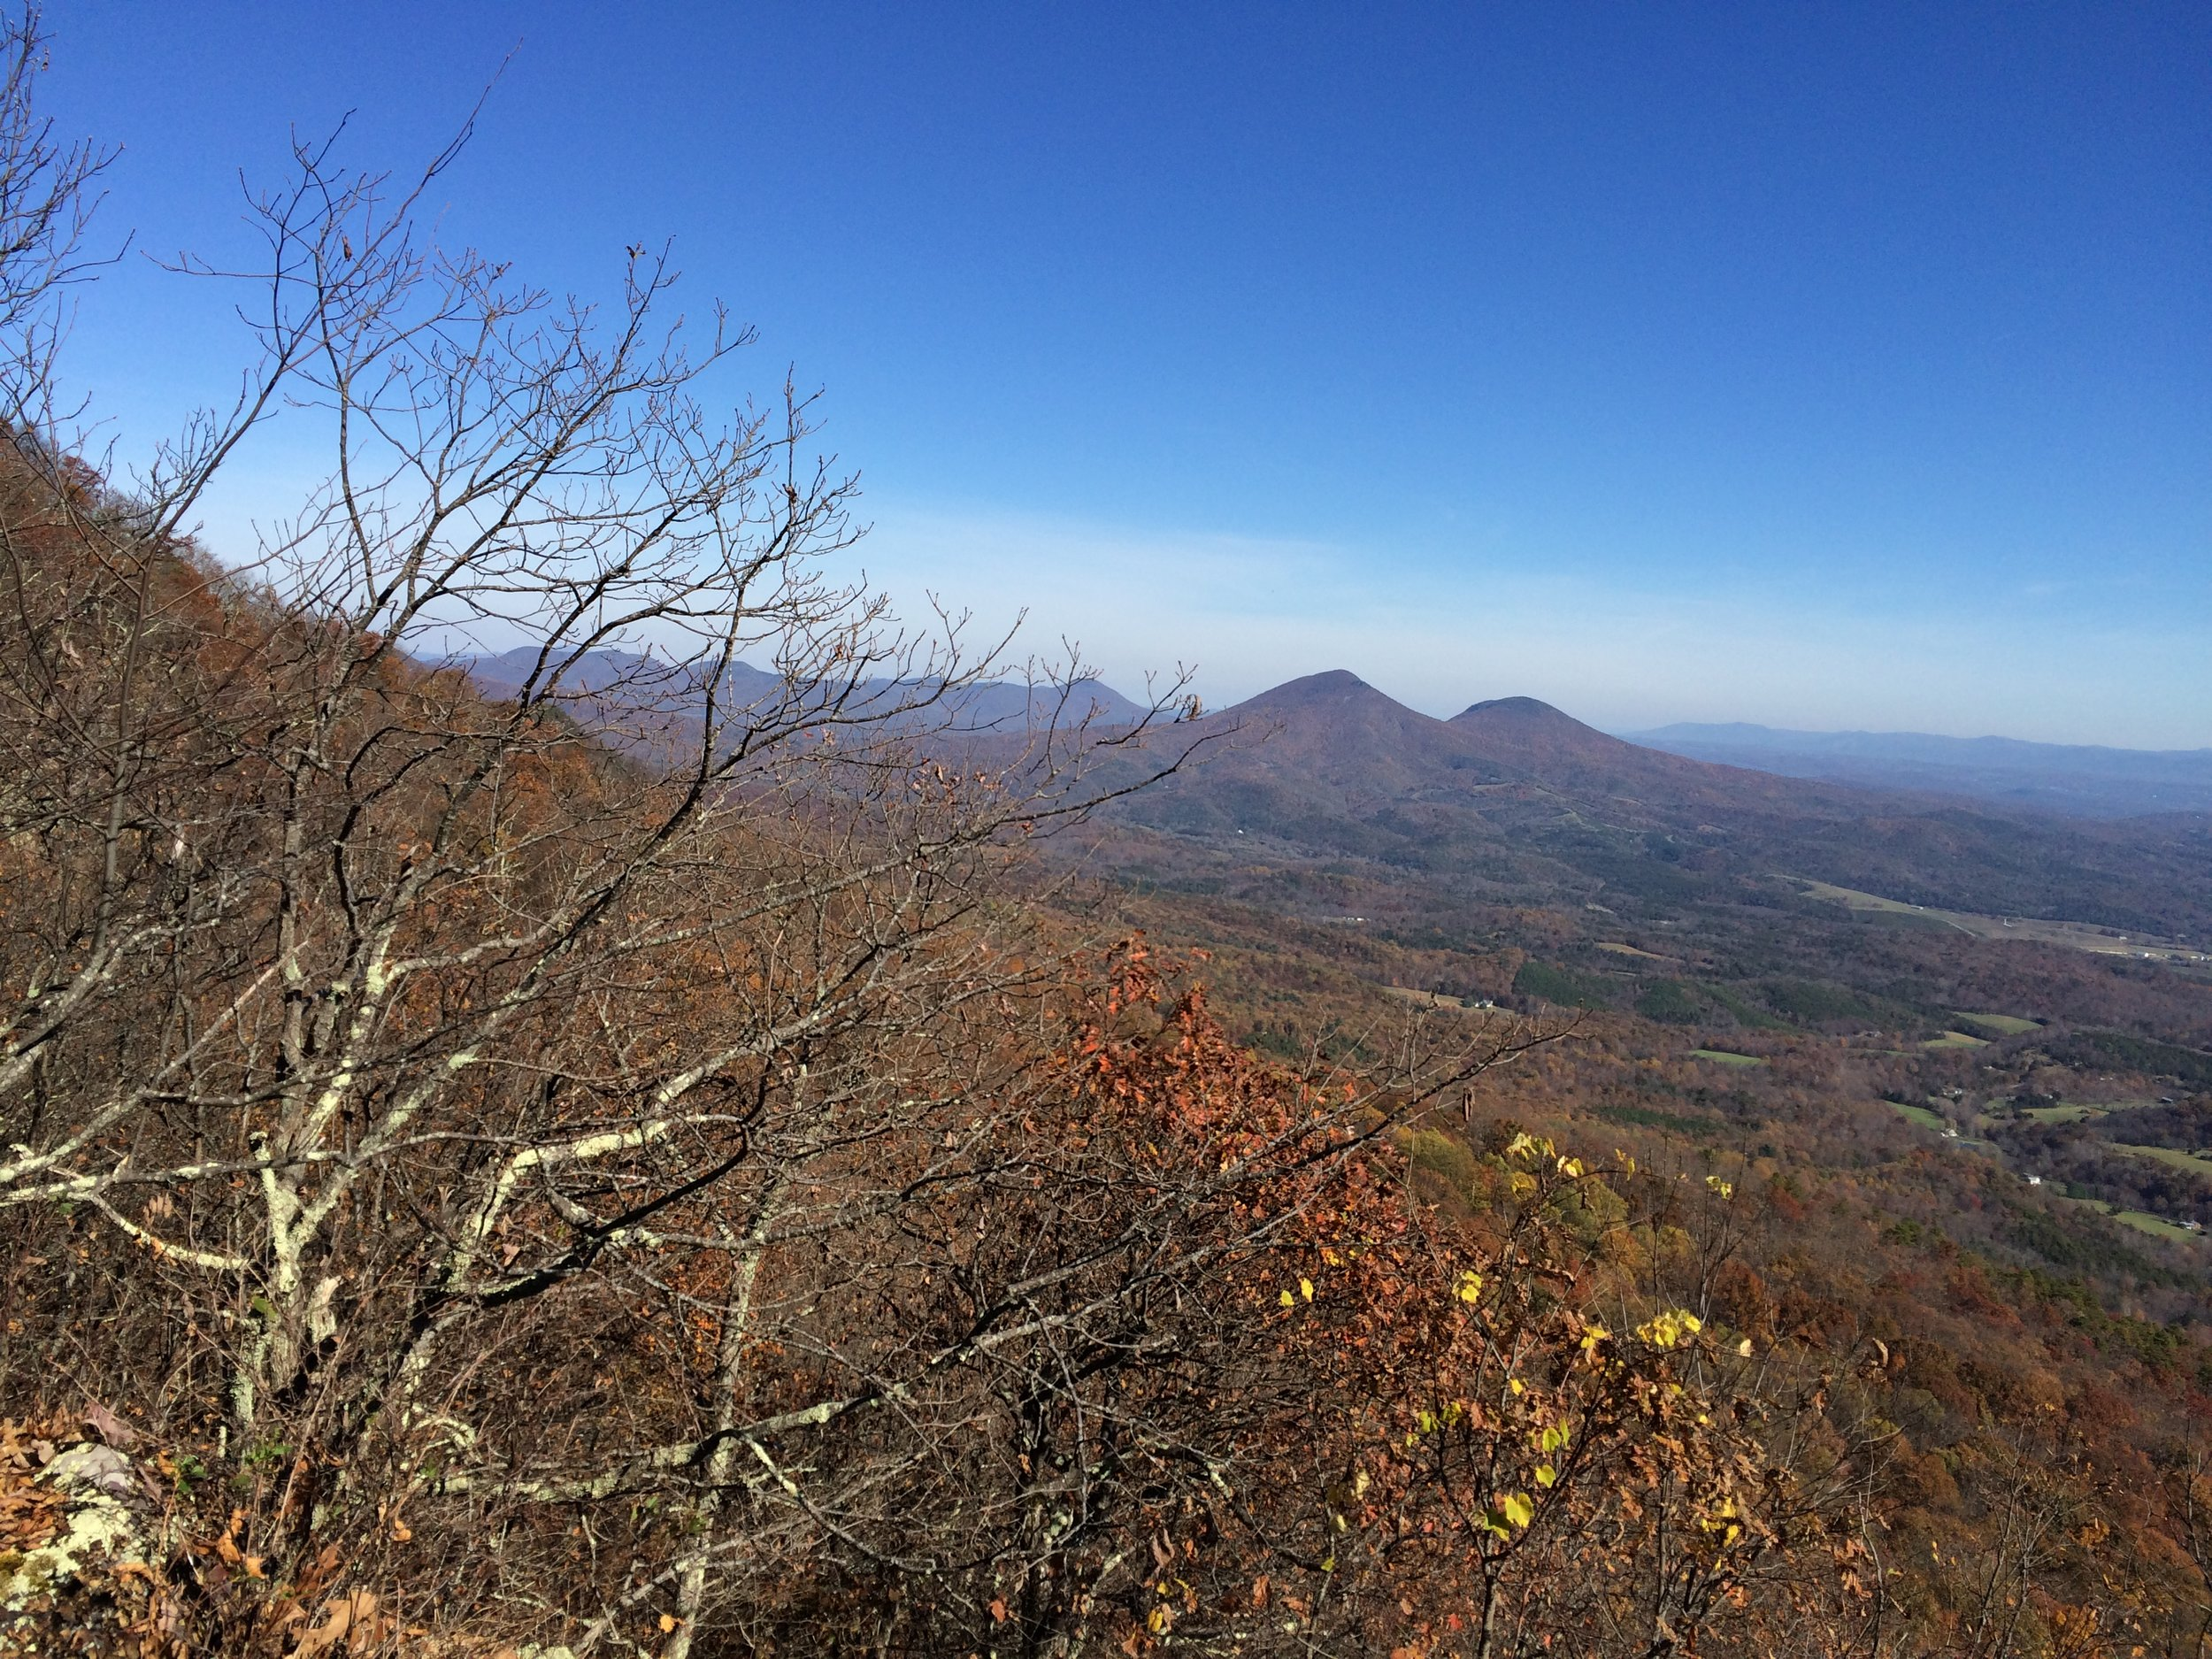 One of many great views from the ridge top.